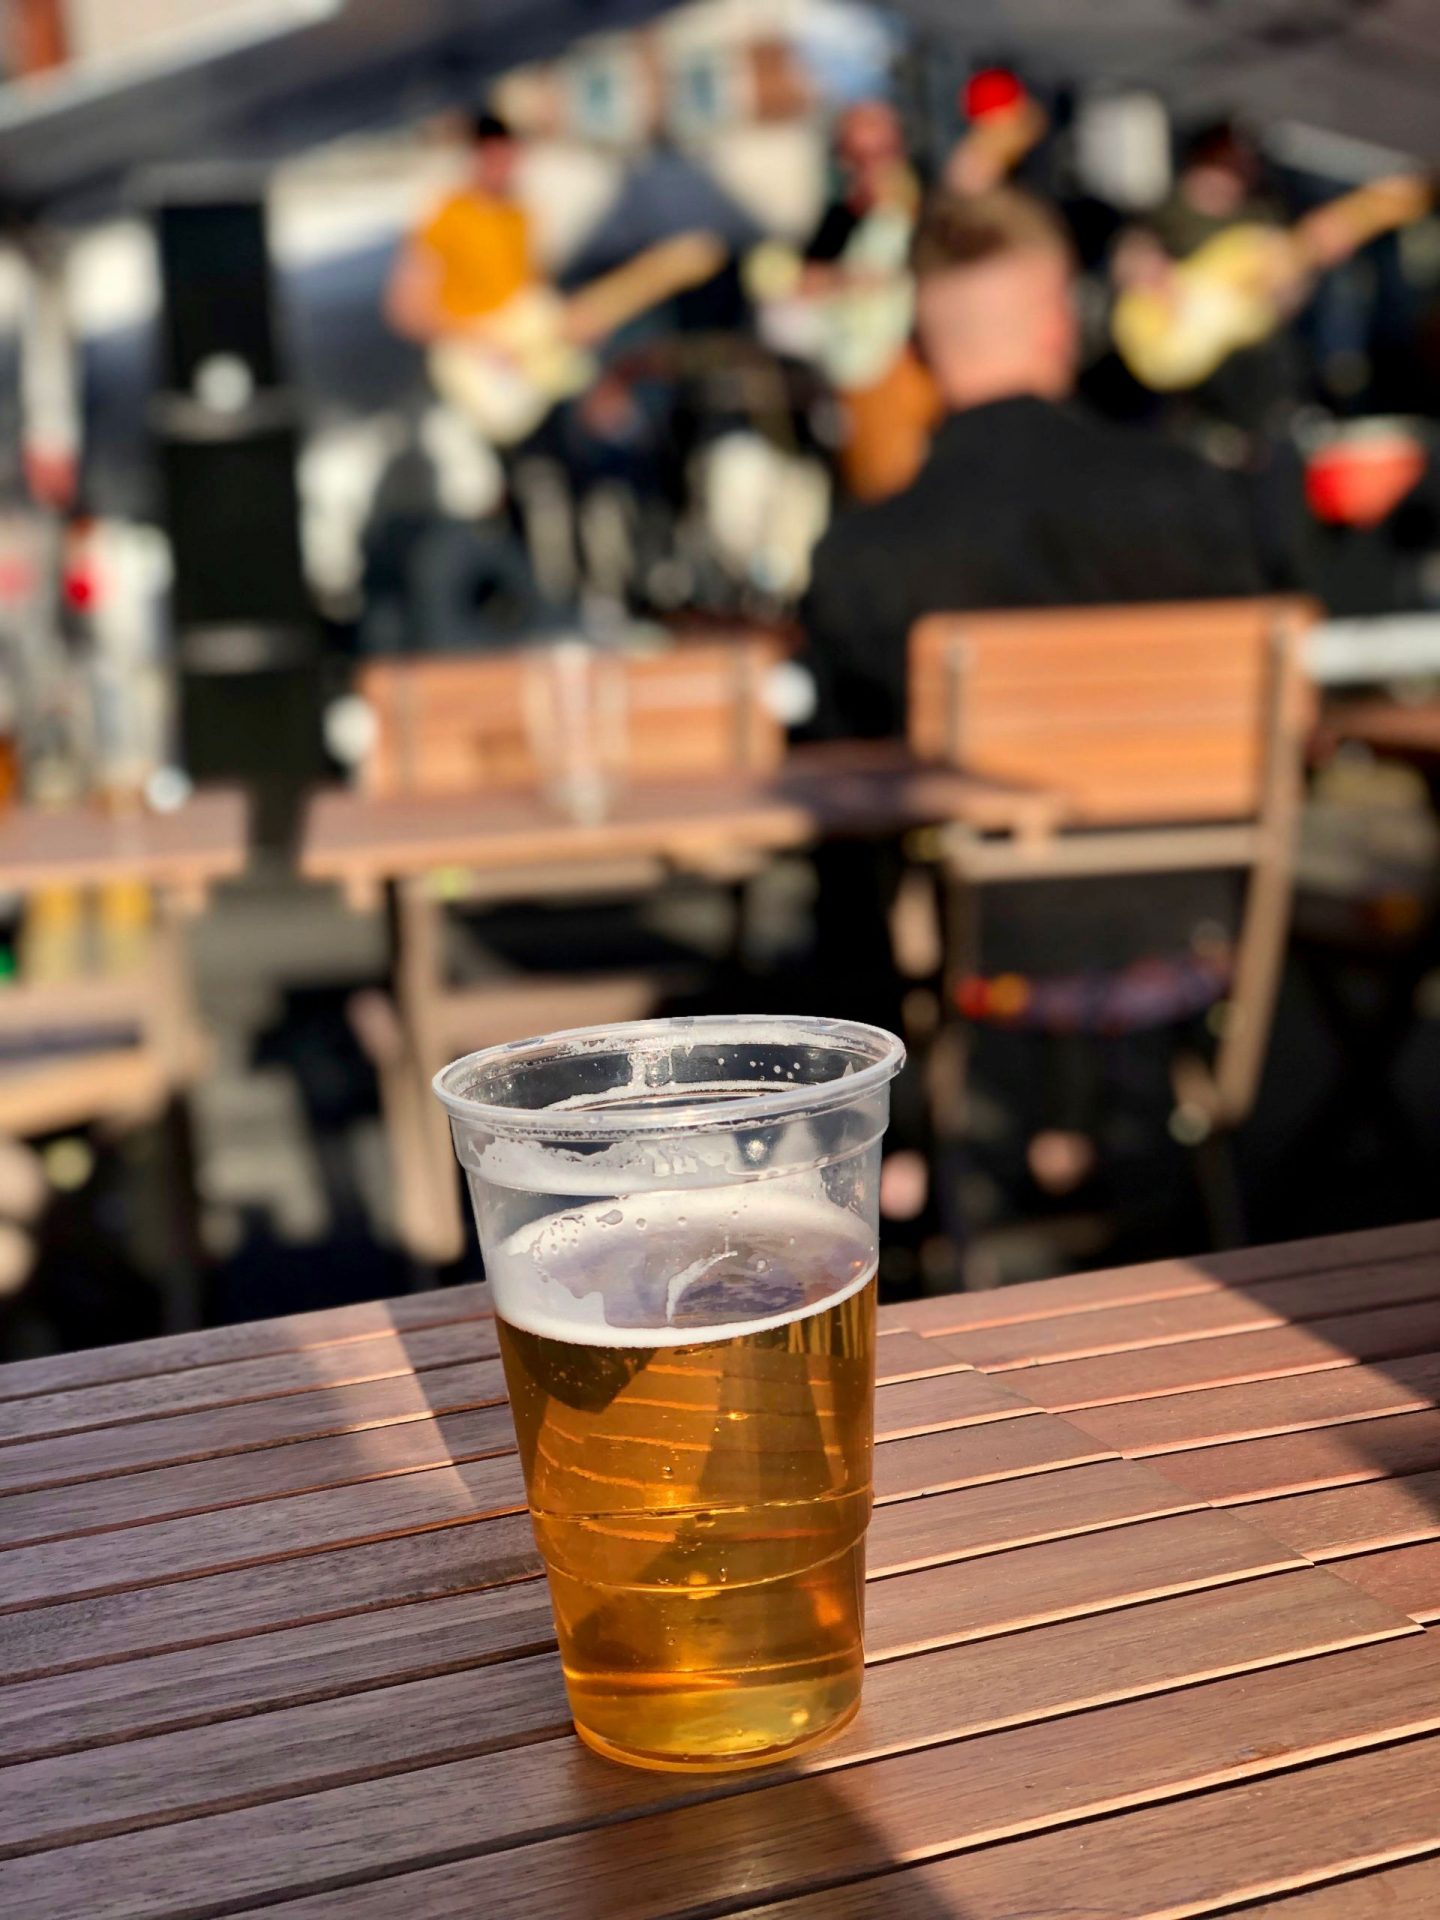 things to do in Leeds city centre - a pint of beer in a plastic cup on a wooden bench in a beer garden